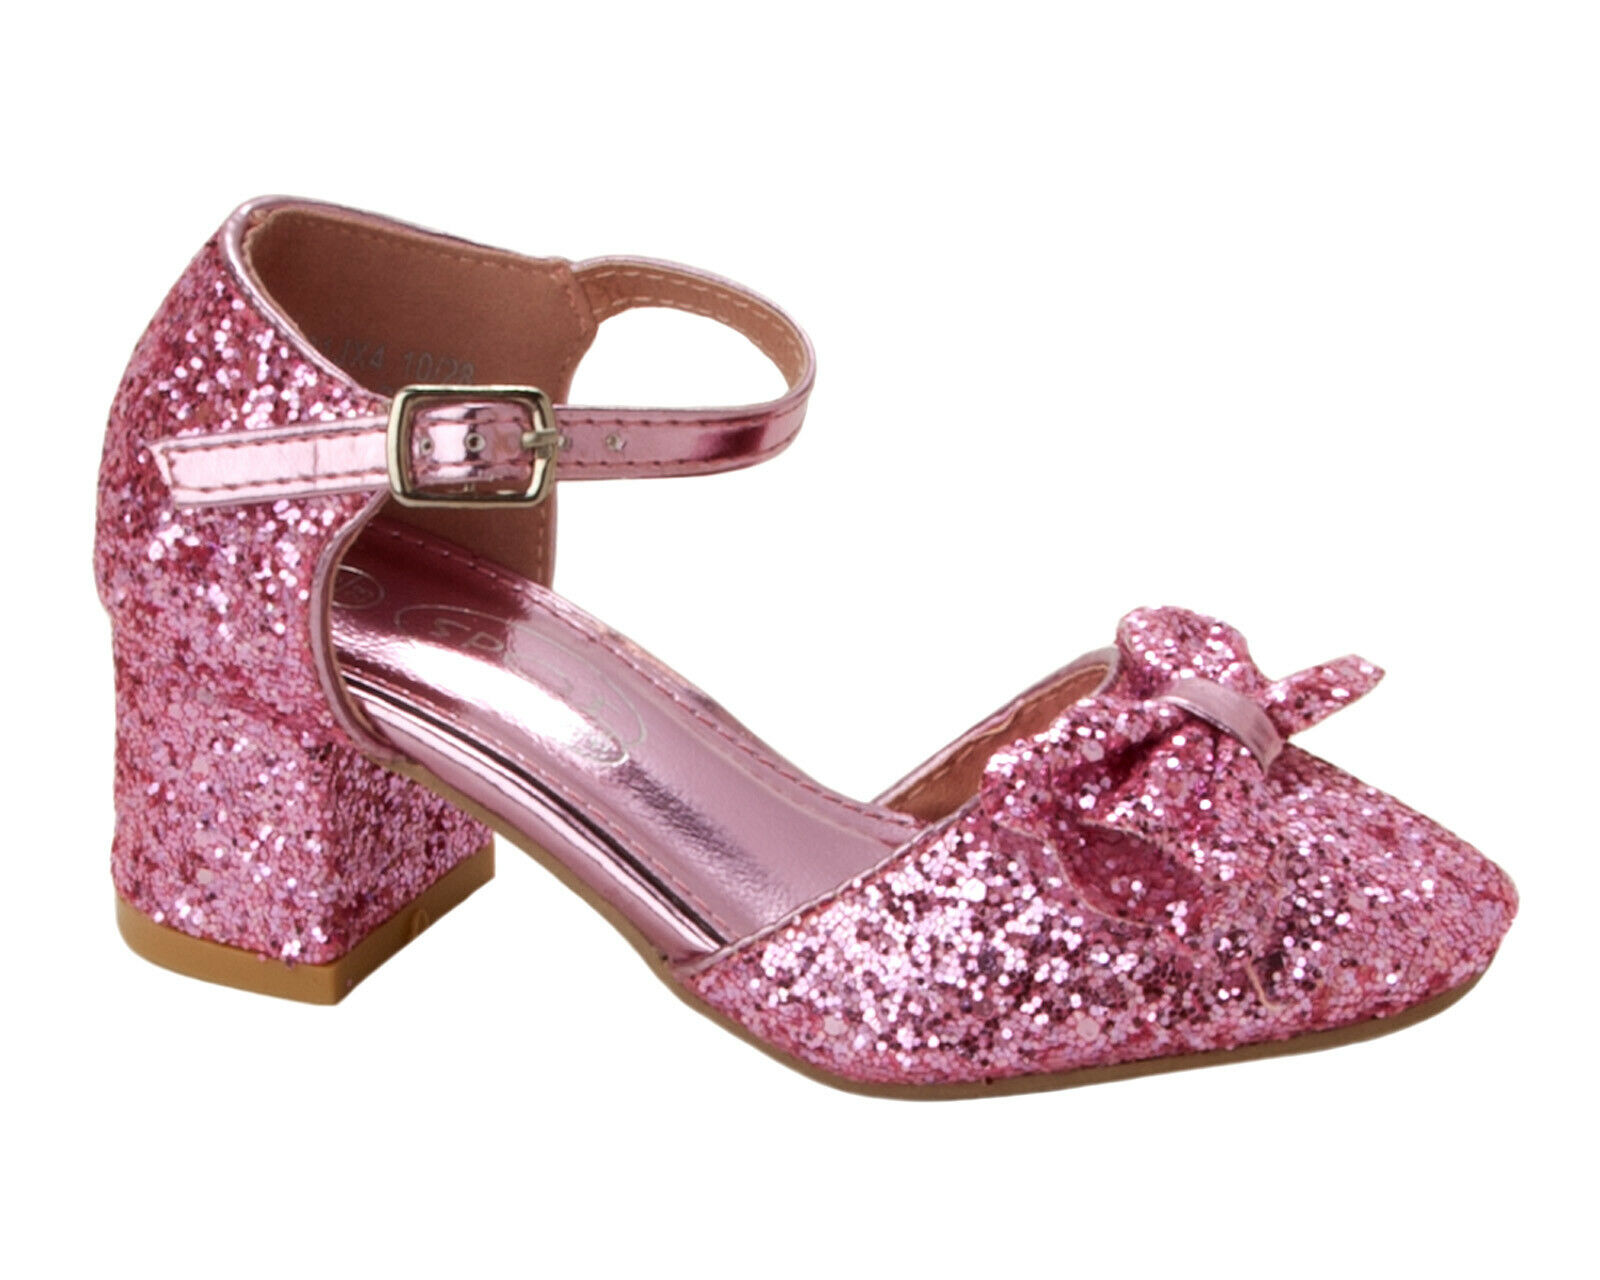 GIRLS PINK GLITTER DIAMANTE BRIDESMAID WEDDING PARTY DRESS SHOES UK SIZE 10-2